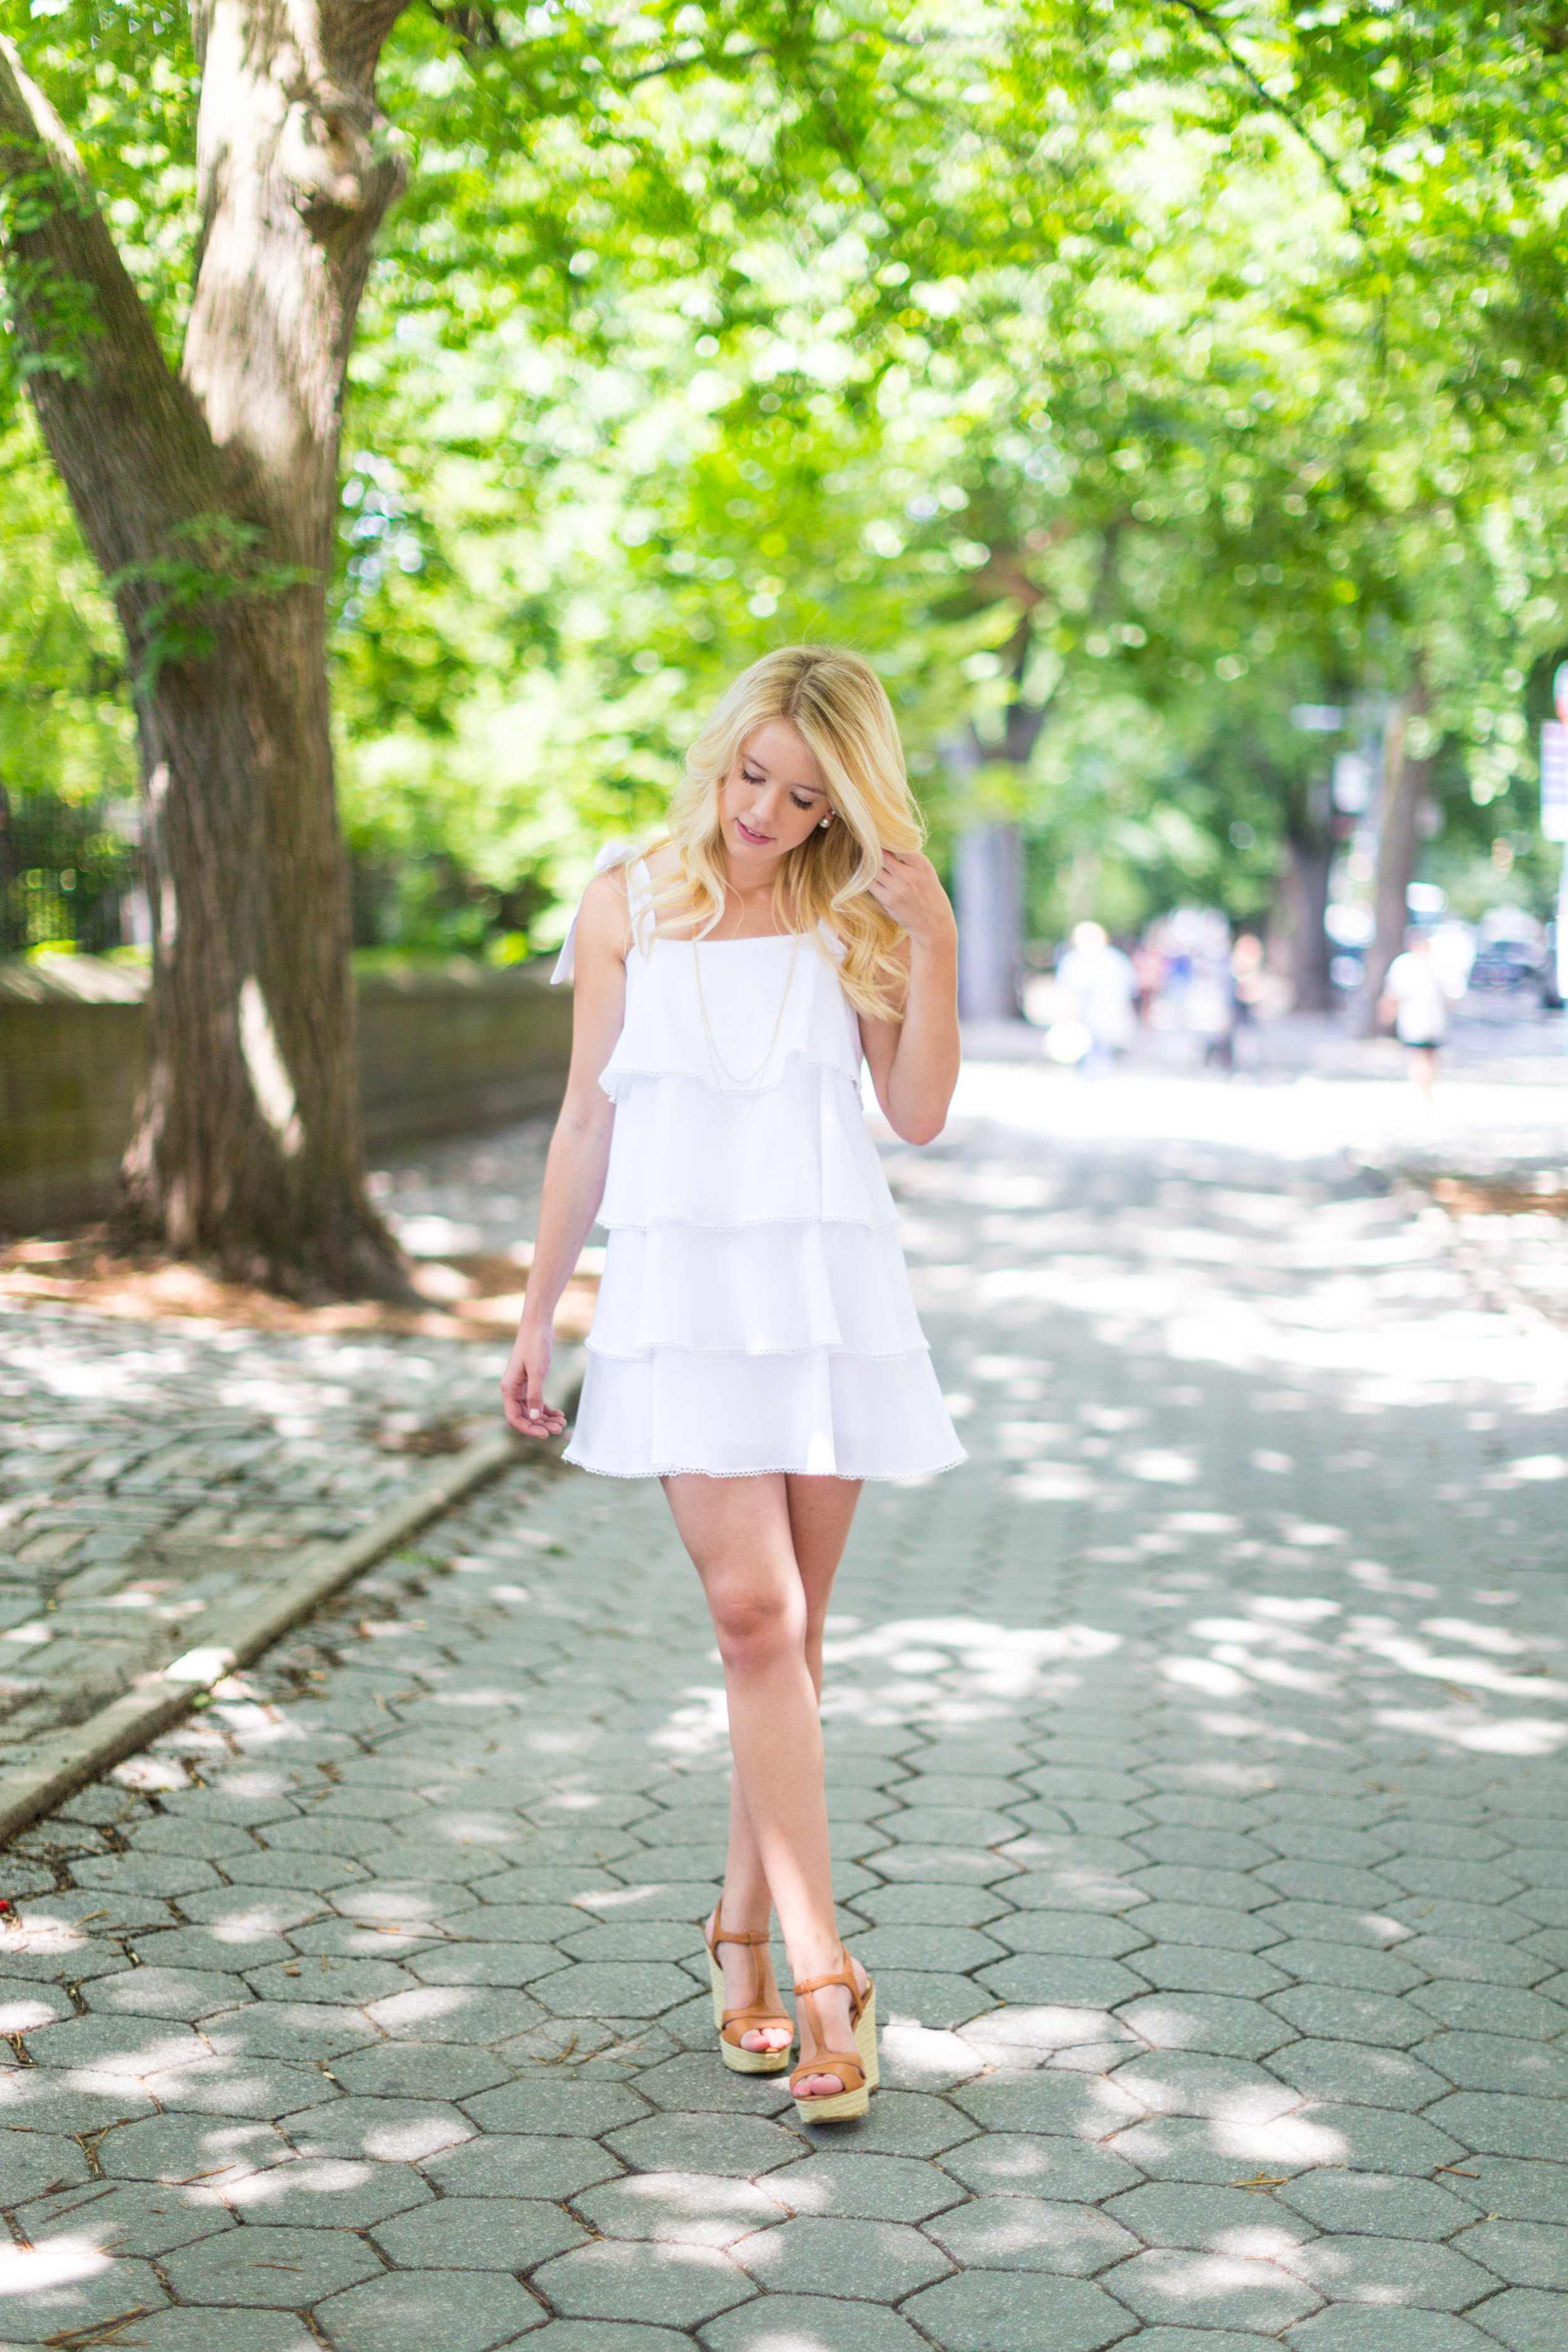 NYC Central Park Summer Fashion White Ruffled Dress-4.jpg